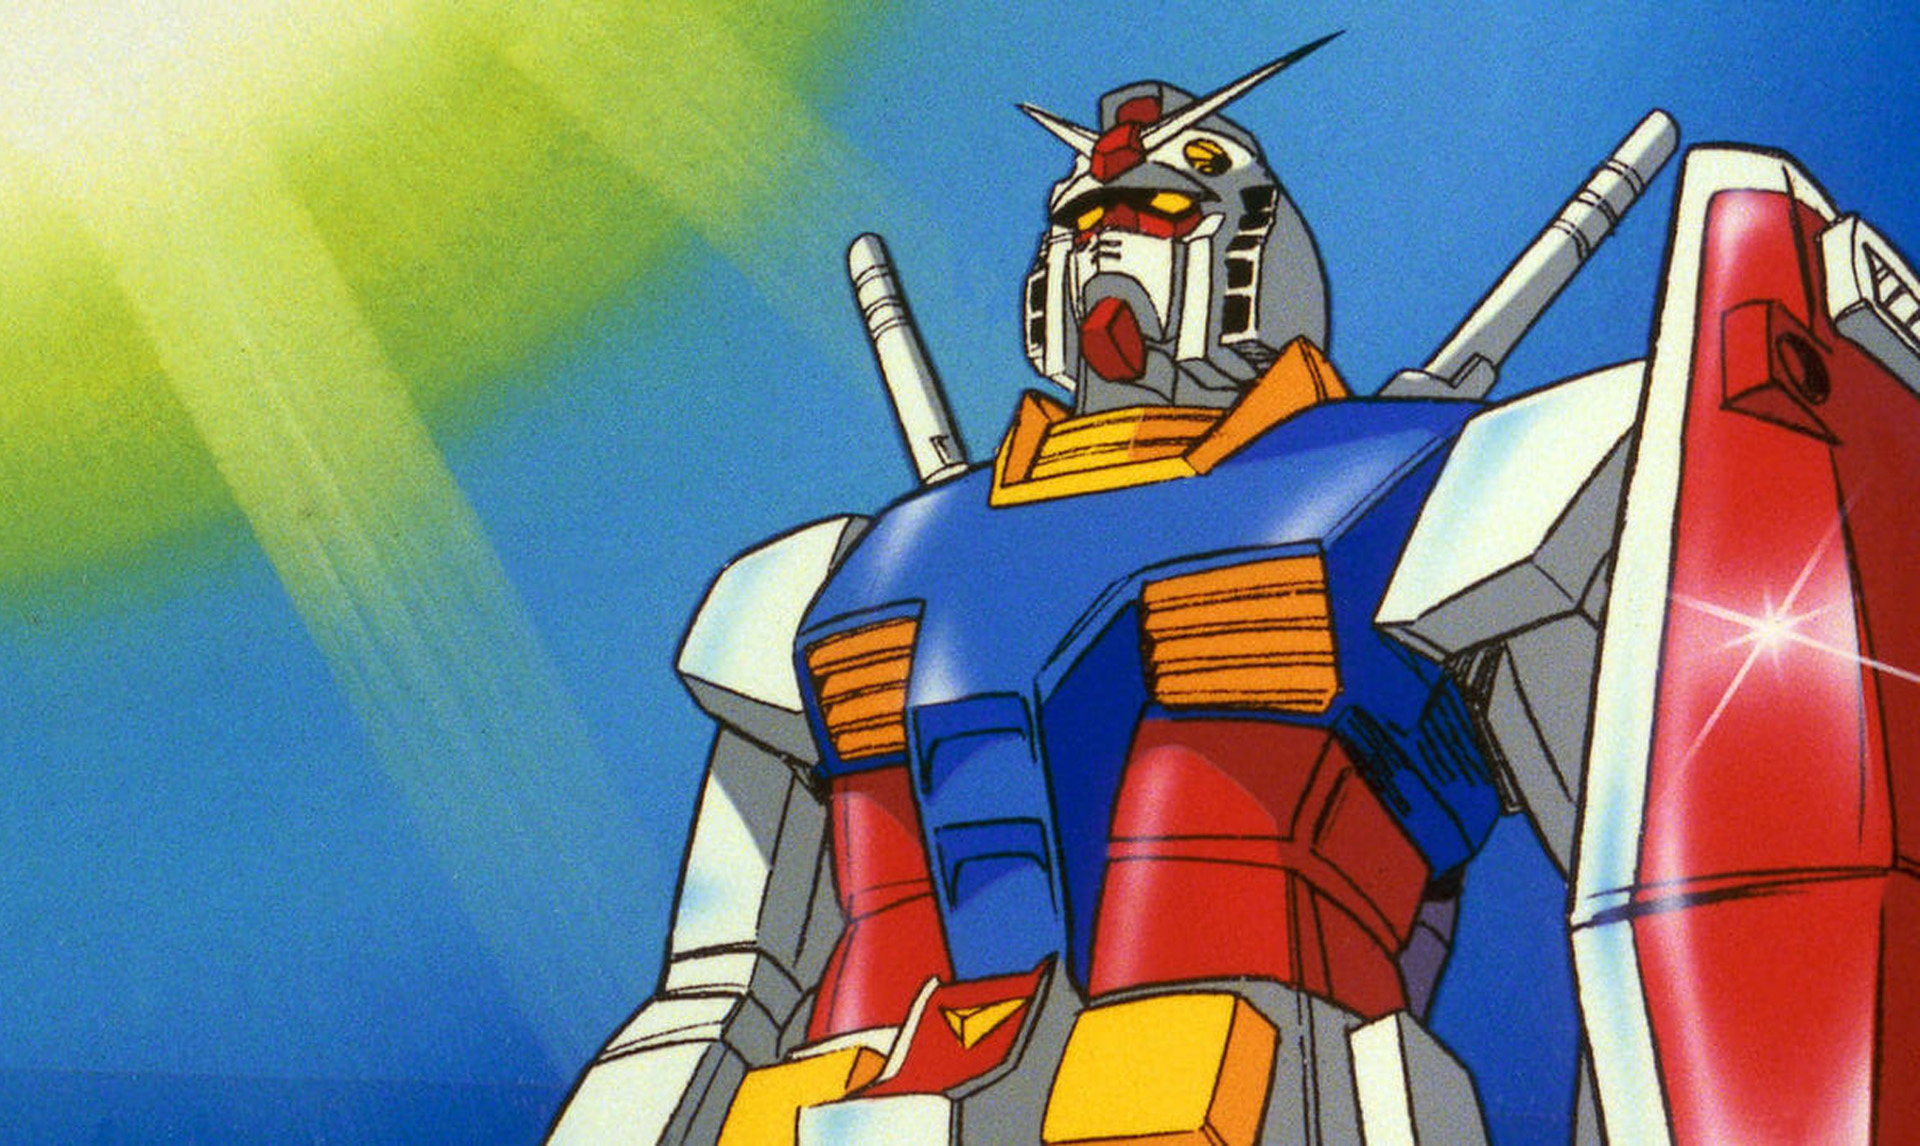 Netflix Announces Live-Action Gundam Movie Project